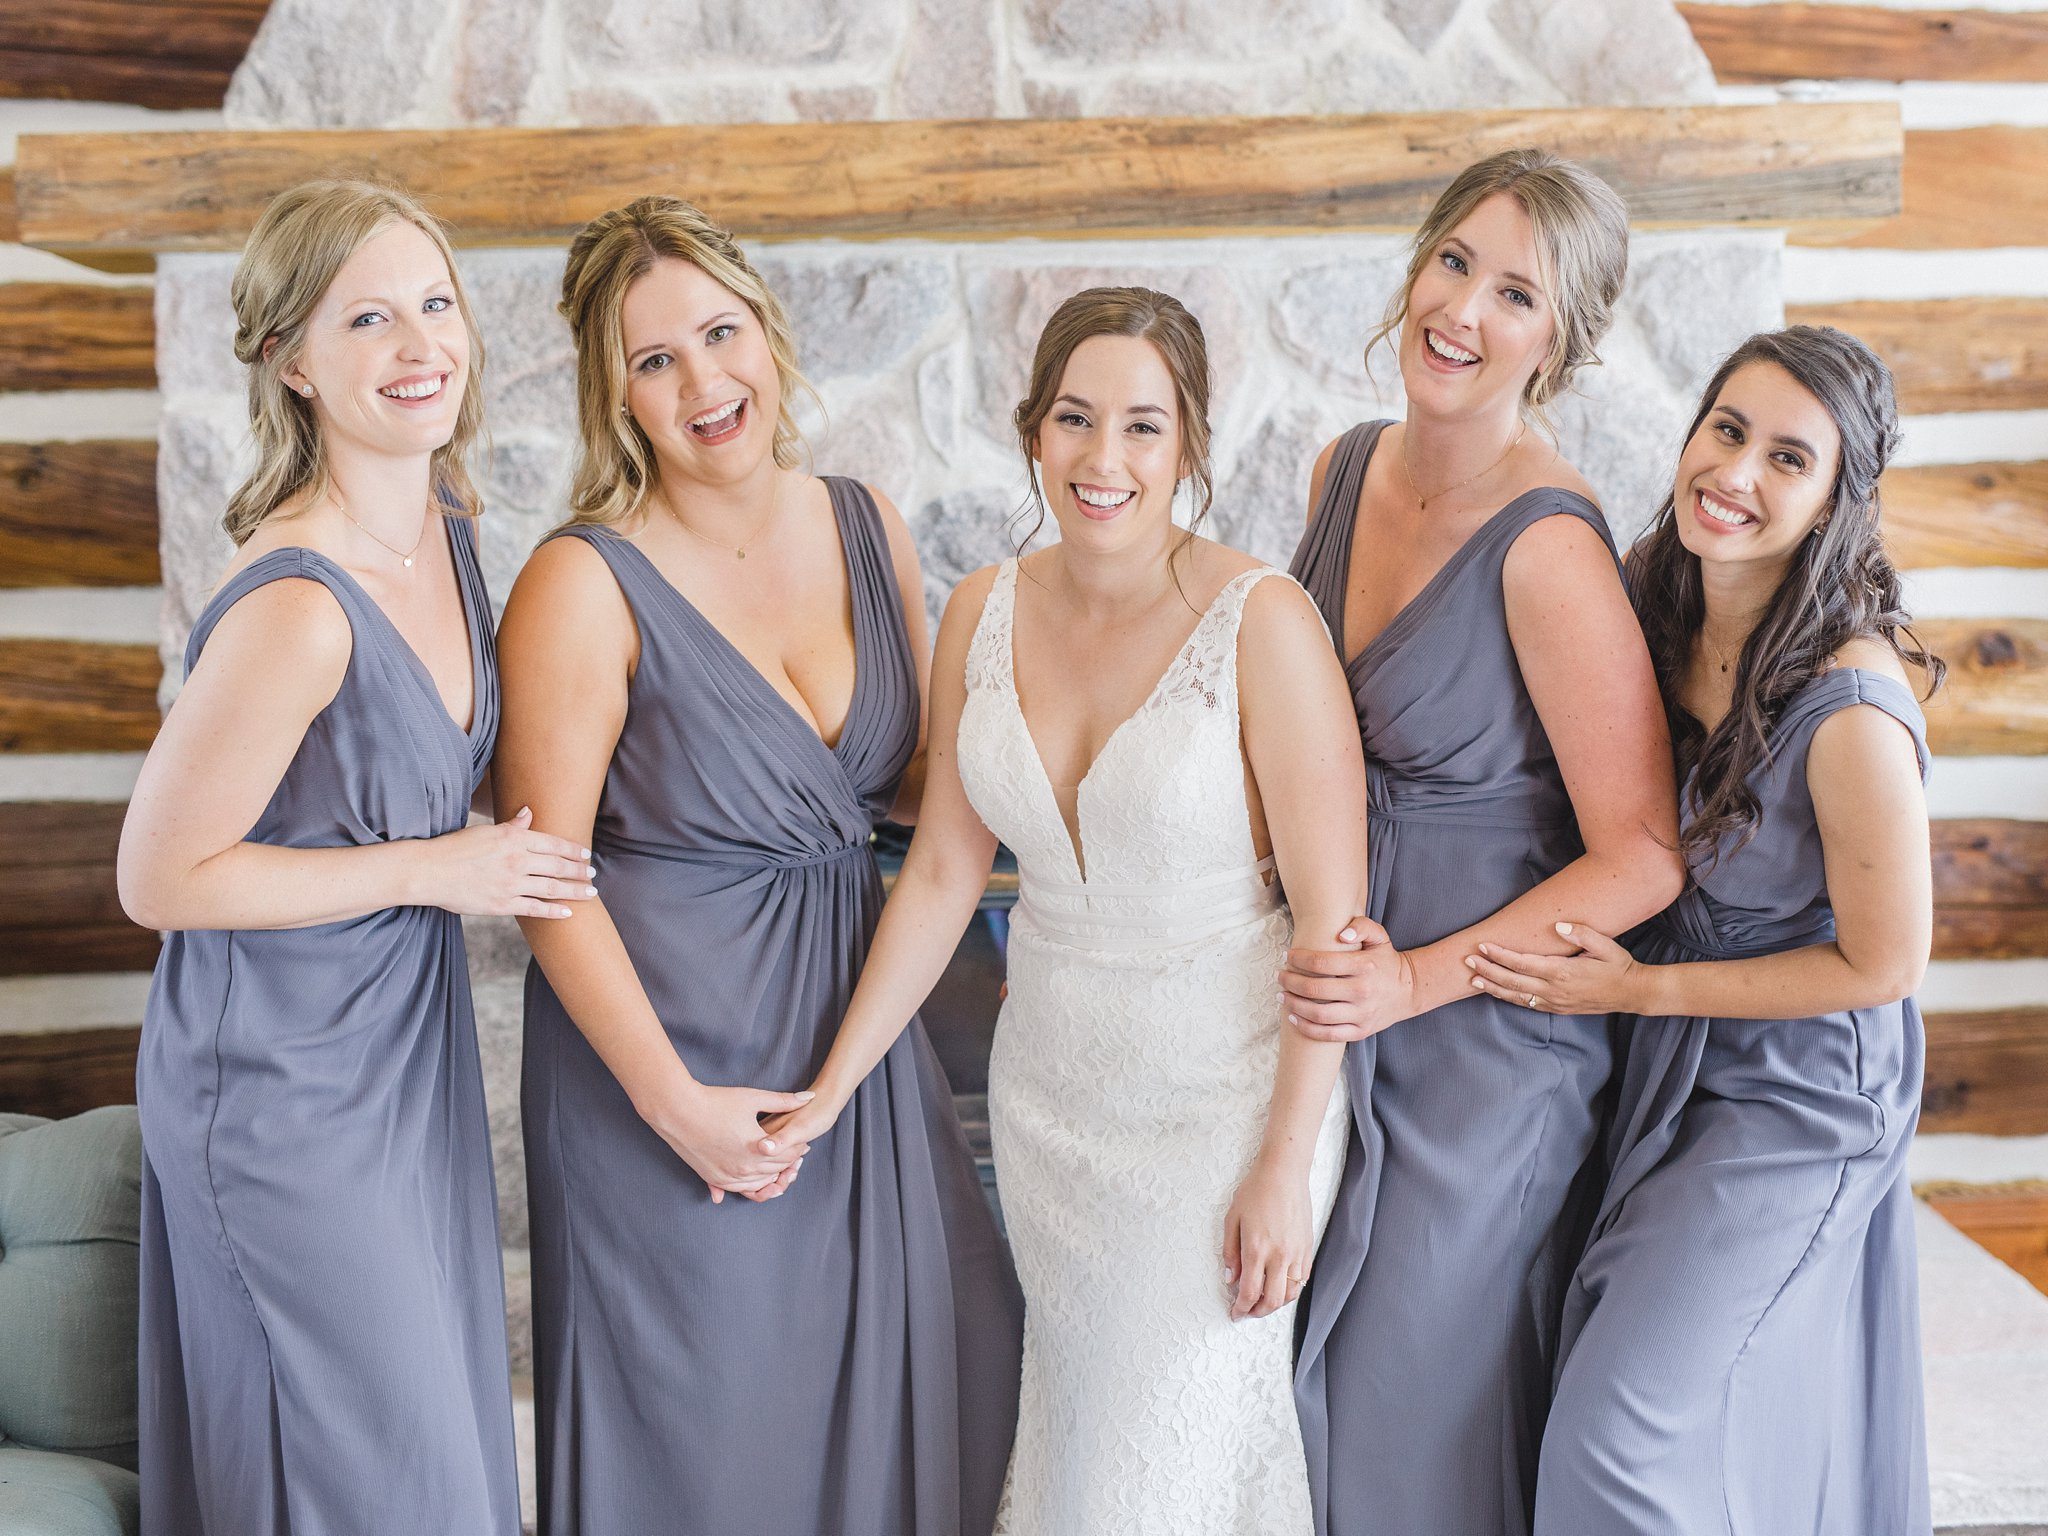 Bridesmaids goals at bride prep purple dresses married at Stonefields, Amy Pinder Photography